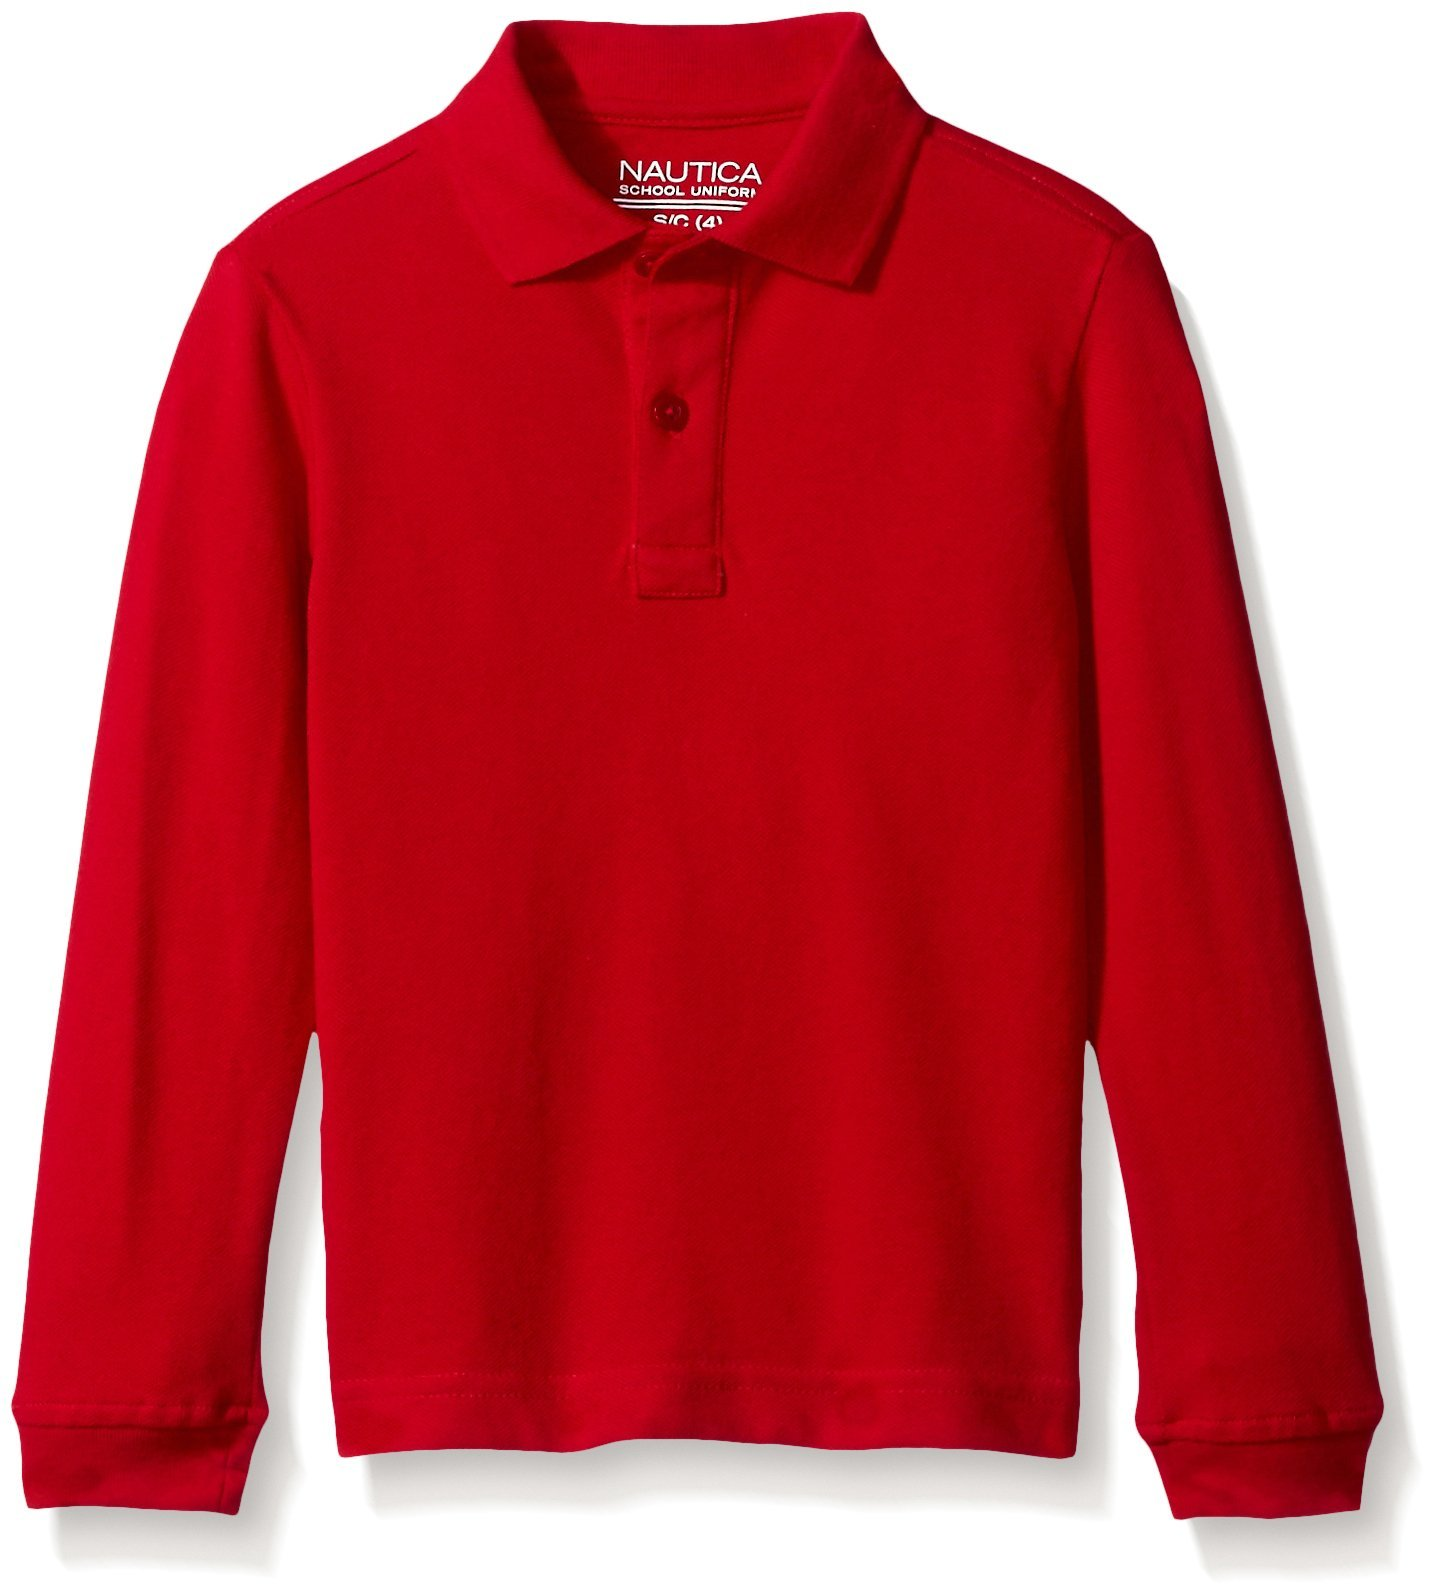 Nautica Little Boys' Uniform Long Sleeve Pique Polo, Red, X-Large/7